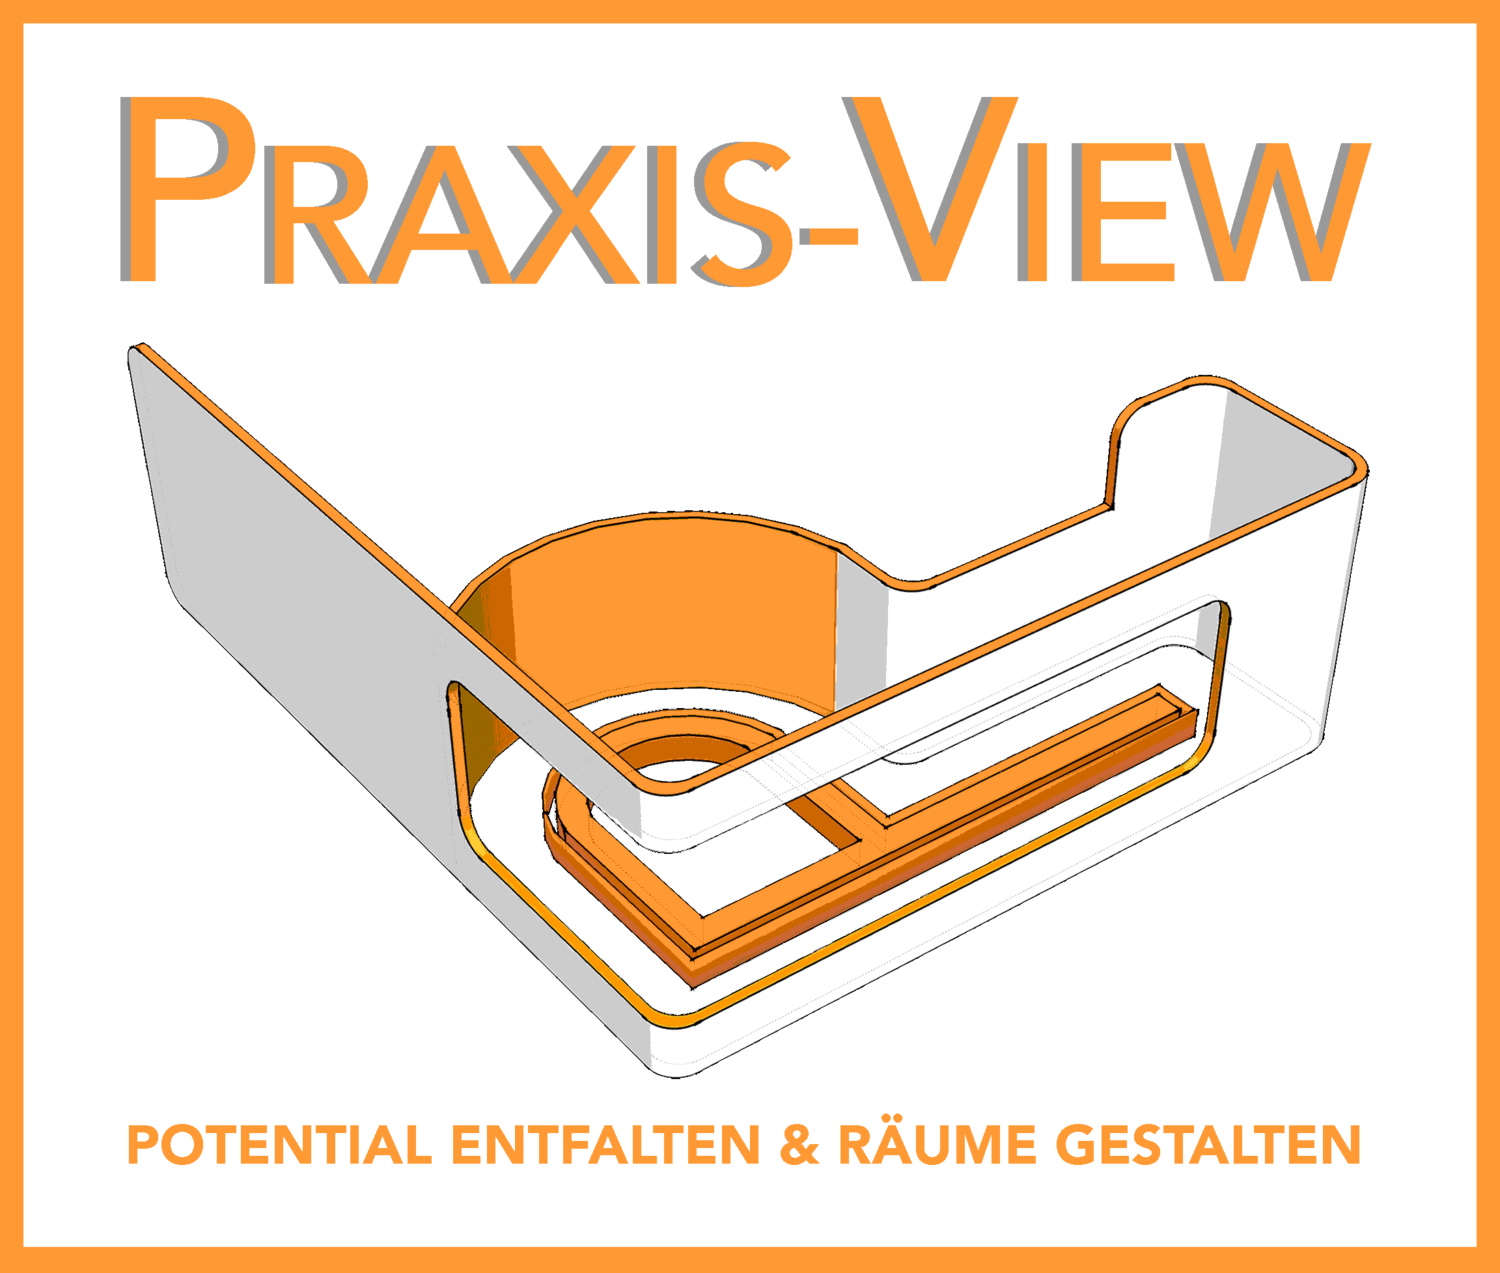 PRAXIS-VIEW